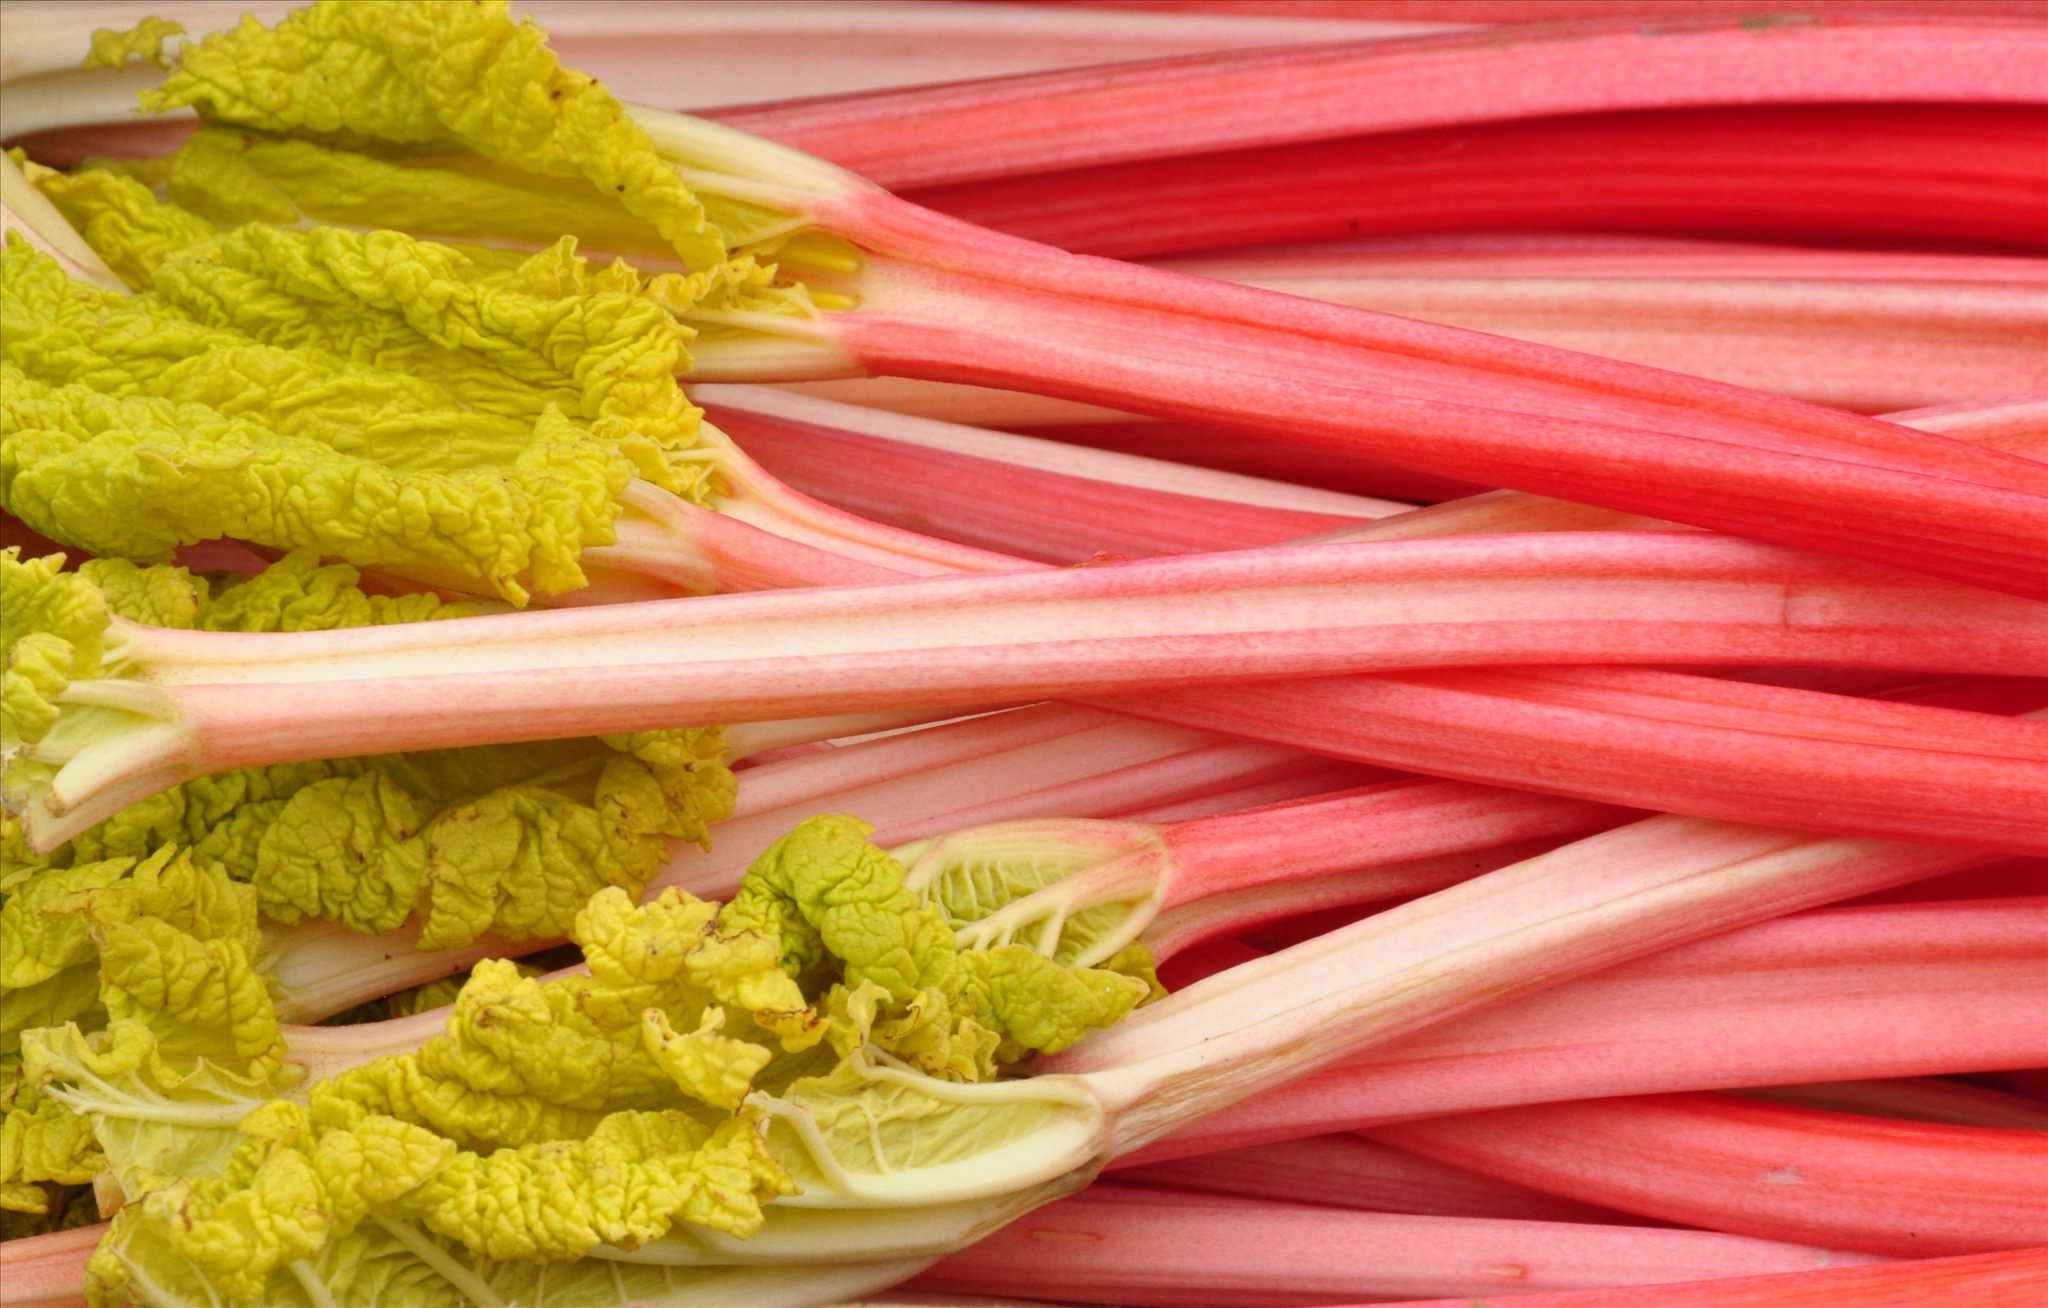 27 Surprising Rhubarb Benefits + Side Effects, Dosage ...